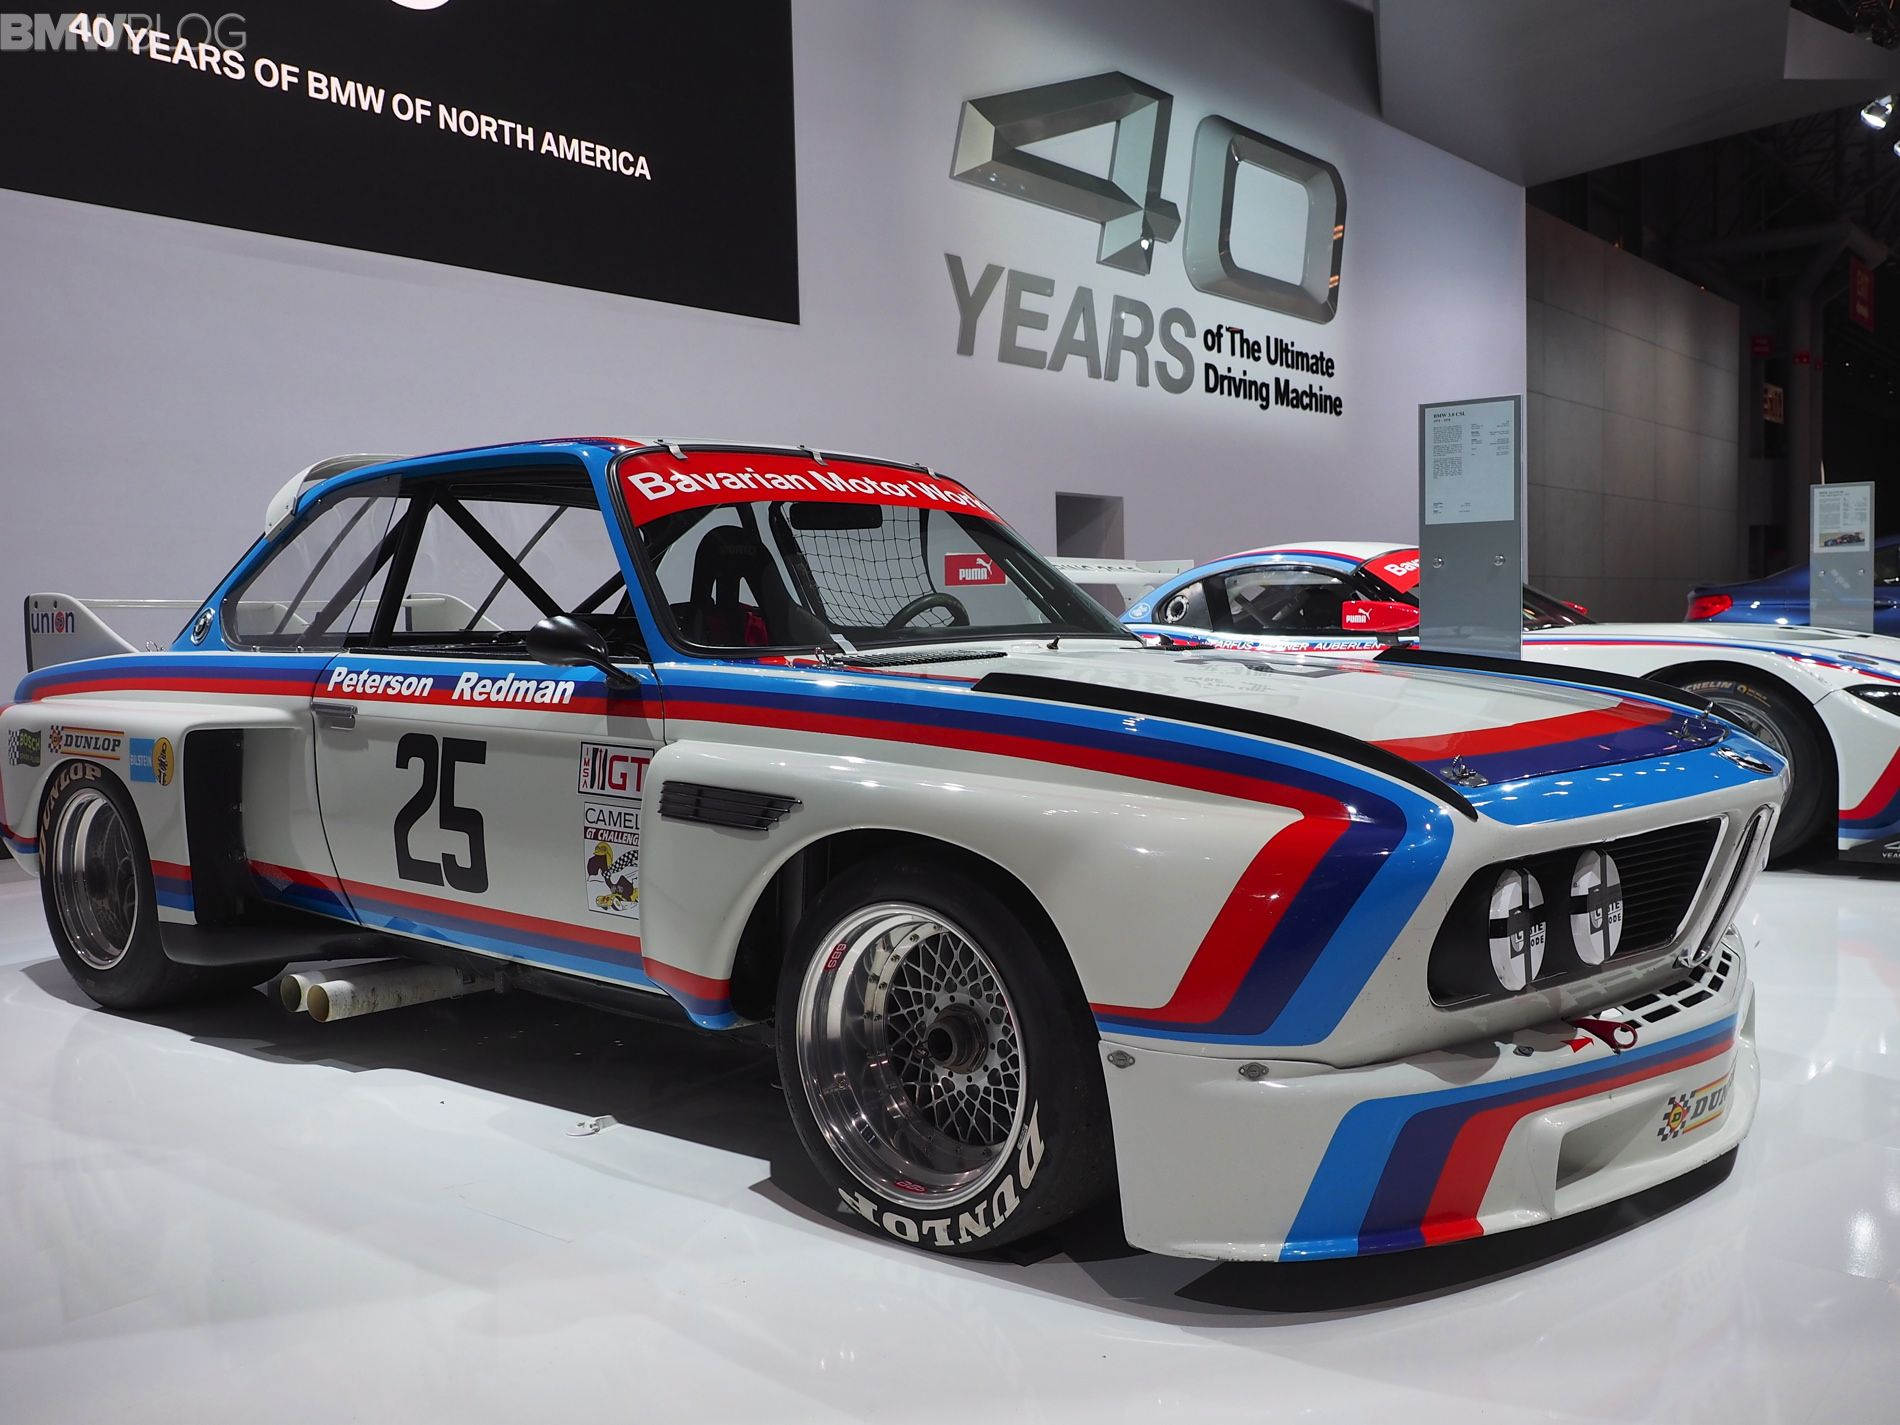 Pin By Bmwblog On Bmw Bmw Classic Cars Race Cars Bmw Cars